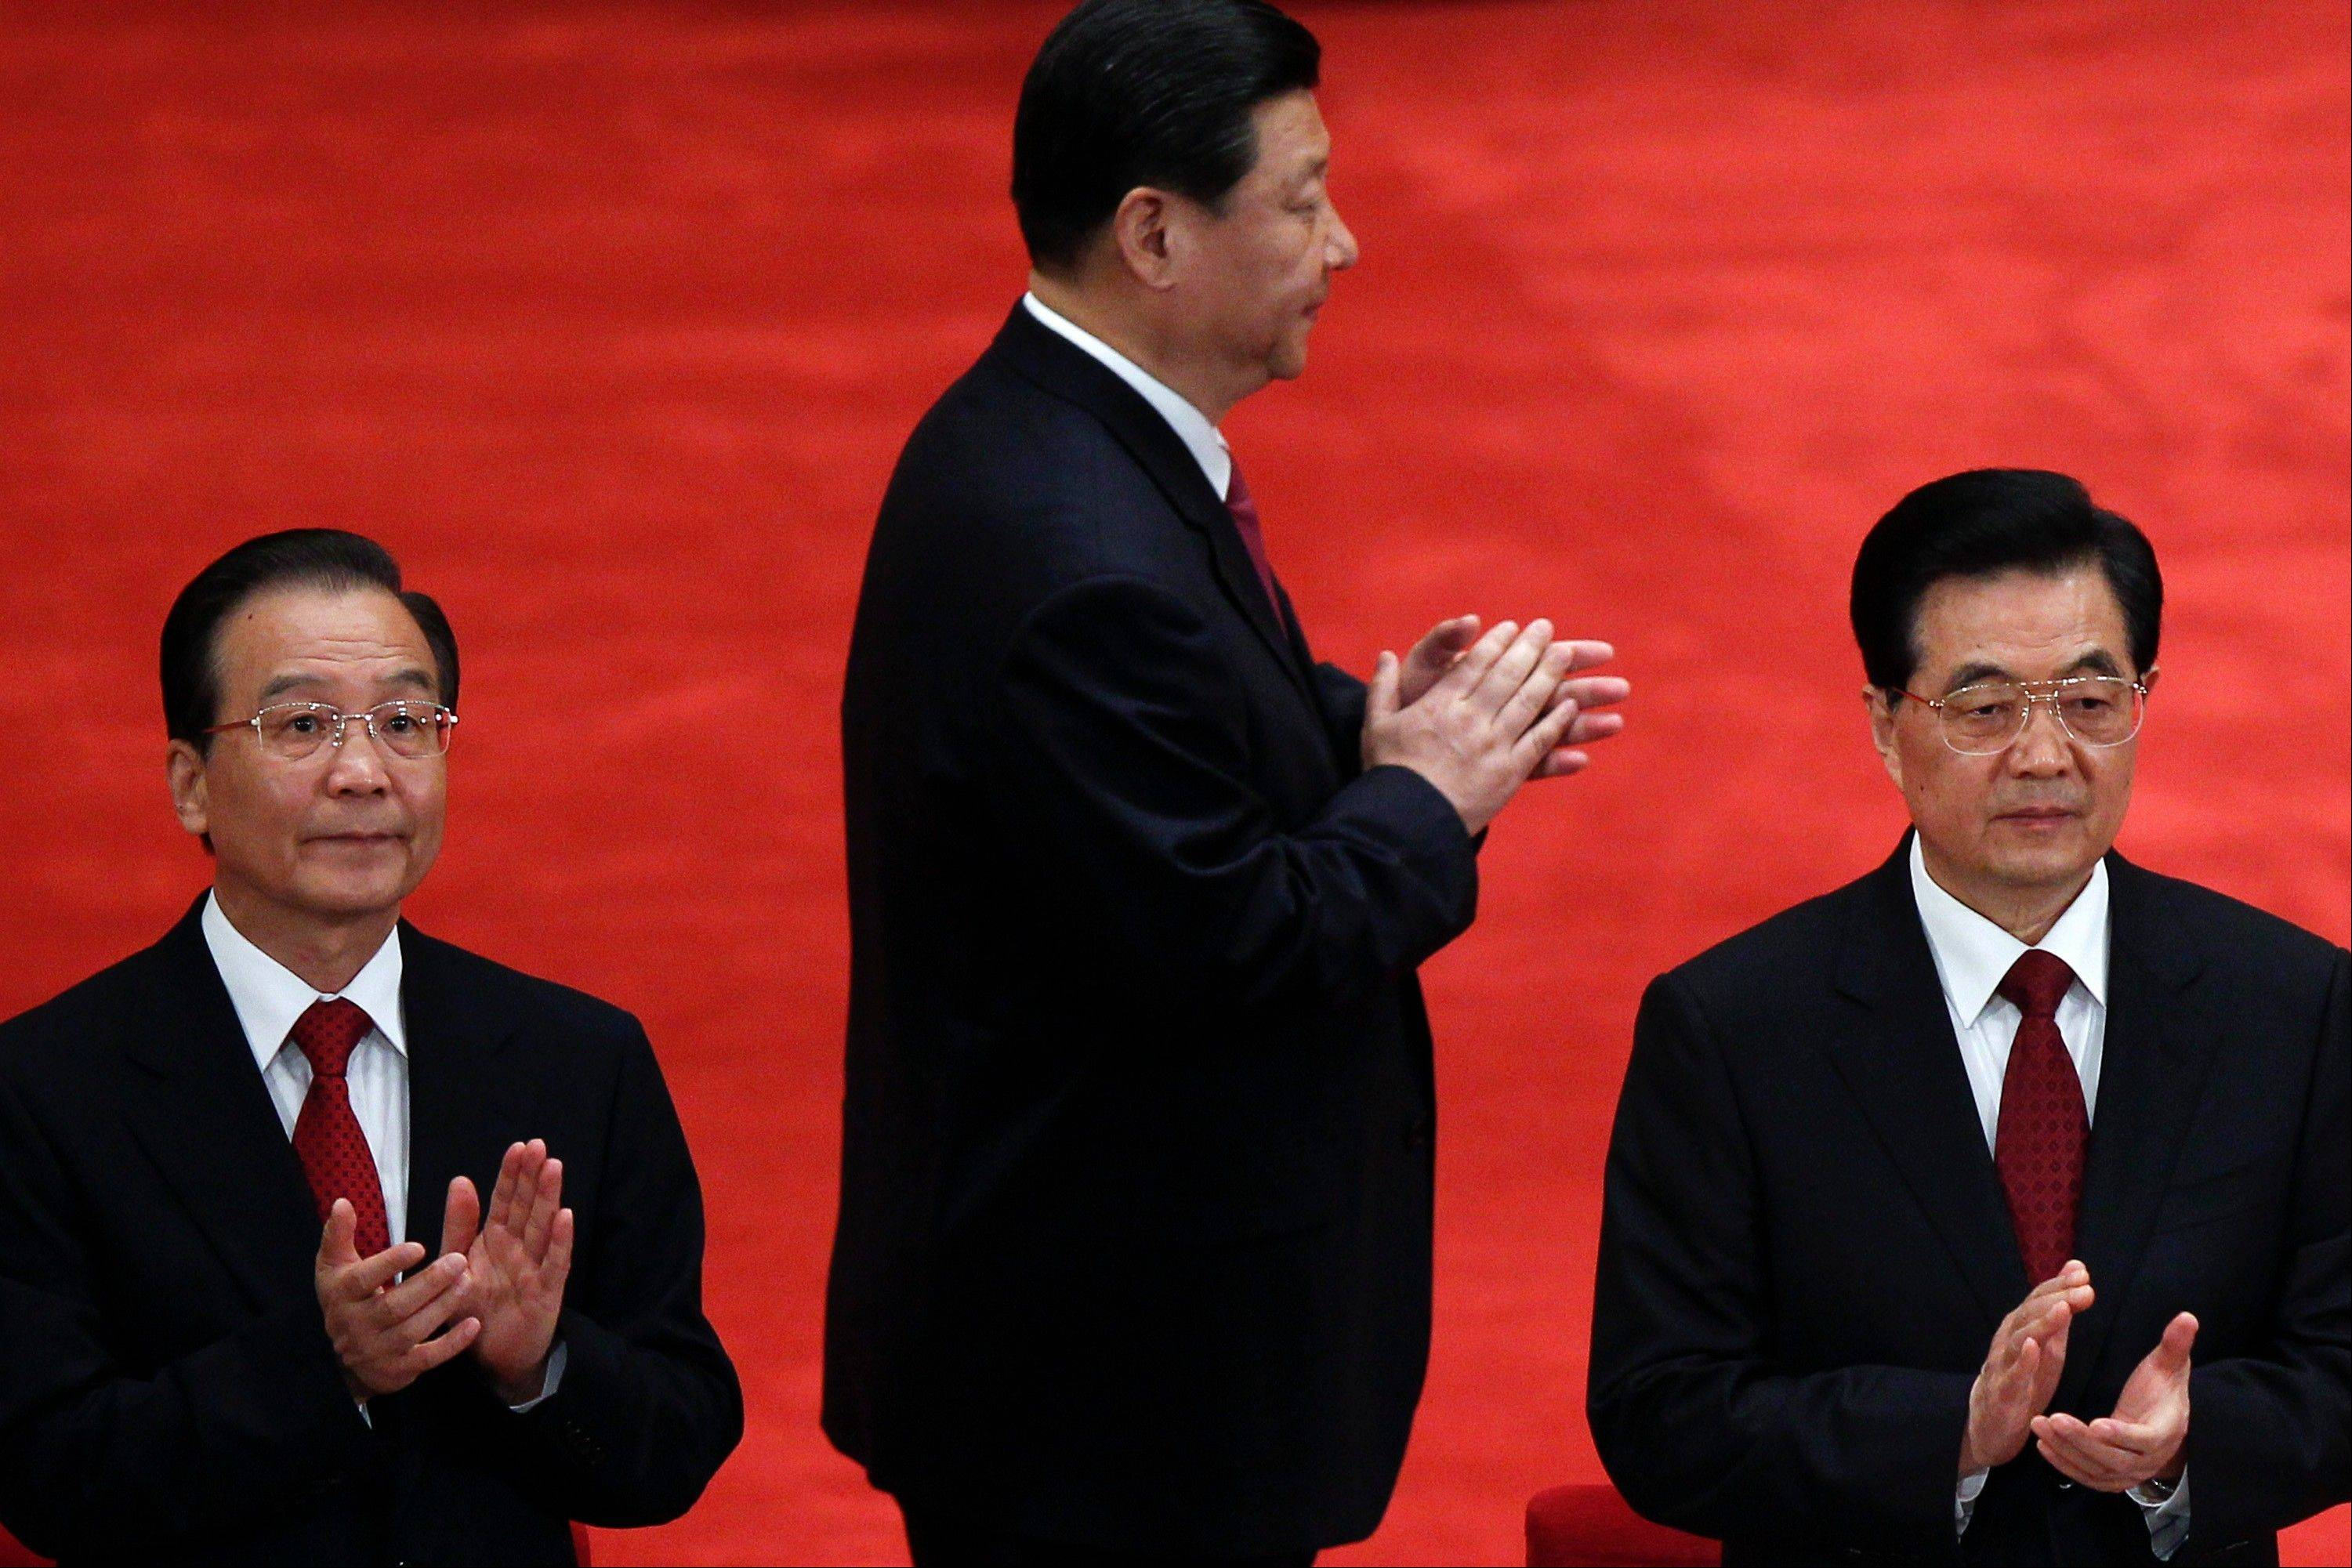 Chinese President Hu Jintao, right, Premier Wen Jiabao, left, and Vice President Xi Jinping, center, clap as they arrive for a conference to celebrate the 90th anniversary of the founding of the Chinese Communist Youth League at the Great Hall of the People in Beijing. The world's two biggest economies are entering the final stages of political campaigns to pick their national leaders. While American candidates wage loud, rah-rah campaigns with a clear timetable as they head toward the Nov. 6 presidential election, China hasn't even announced the date for this fall's Communist Party congress that will appoint the next top leader to replace outgoing Hu Jintao — a post widely expected to go to Vice President Xi Jinping.